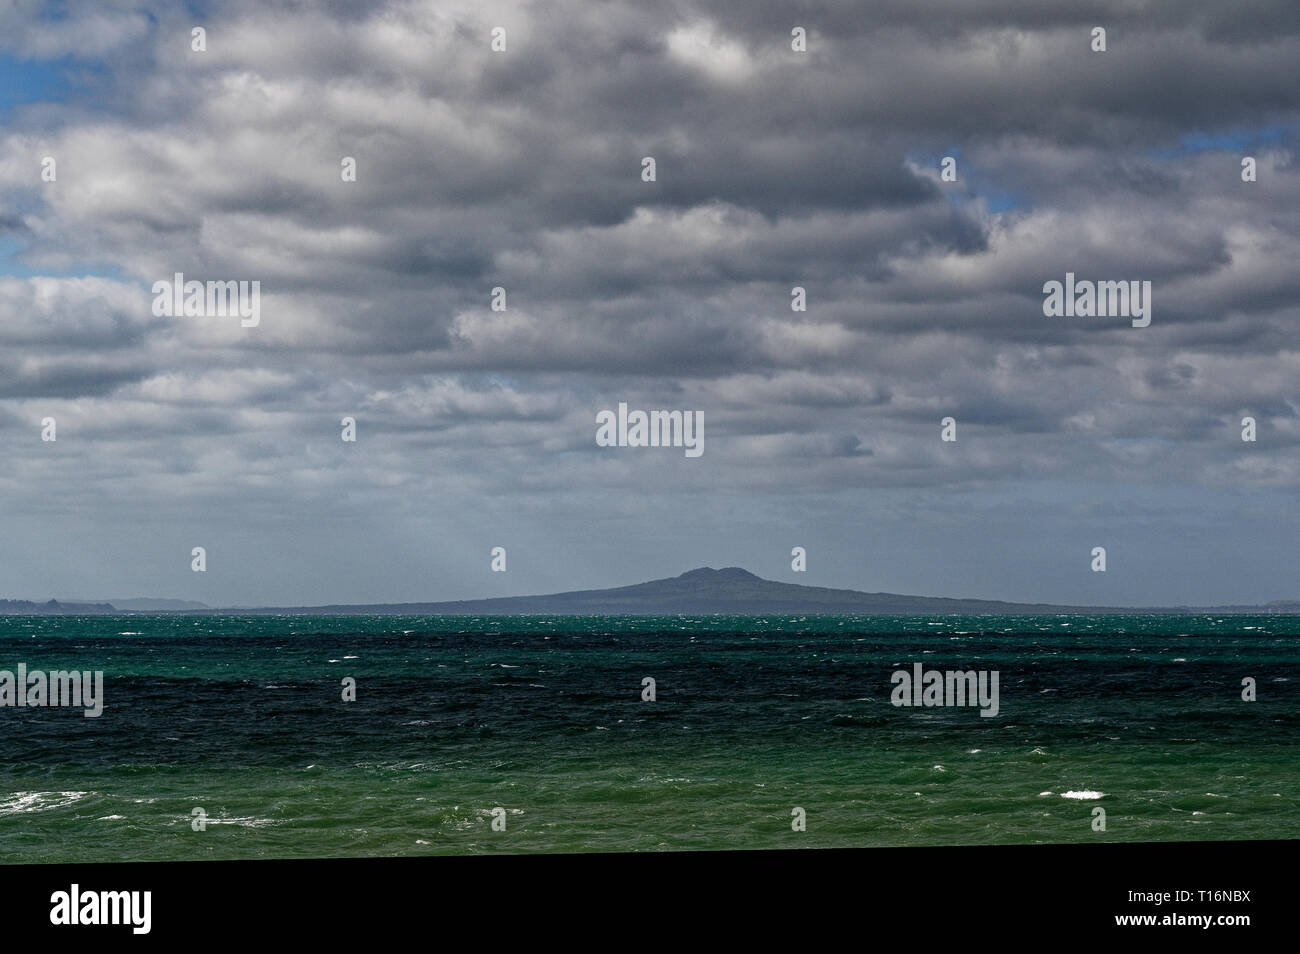 Rangitoto Island, a volcanic island in Gulf Harbour, near Auckland, New Zealand - Stock Image